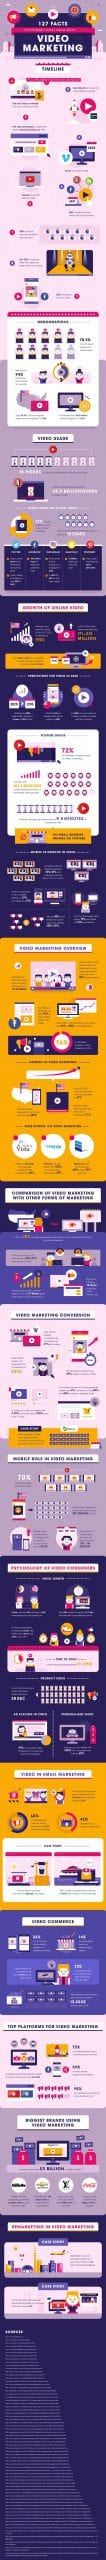 170615-infographic-127-video-marketing-facts-full-jpg